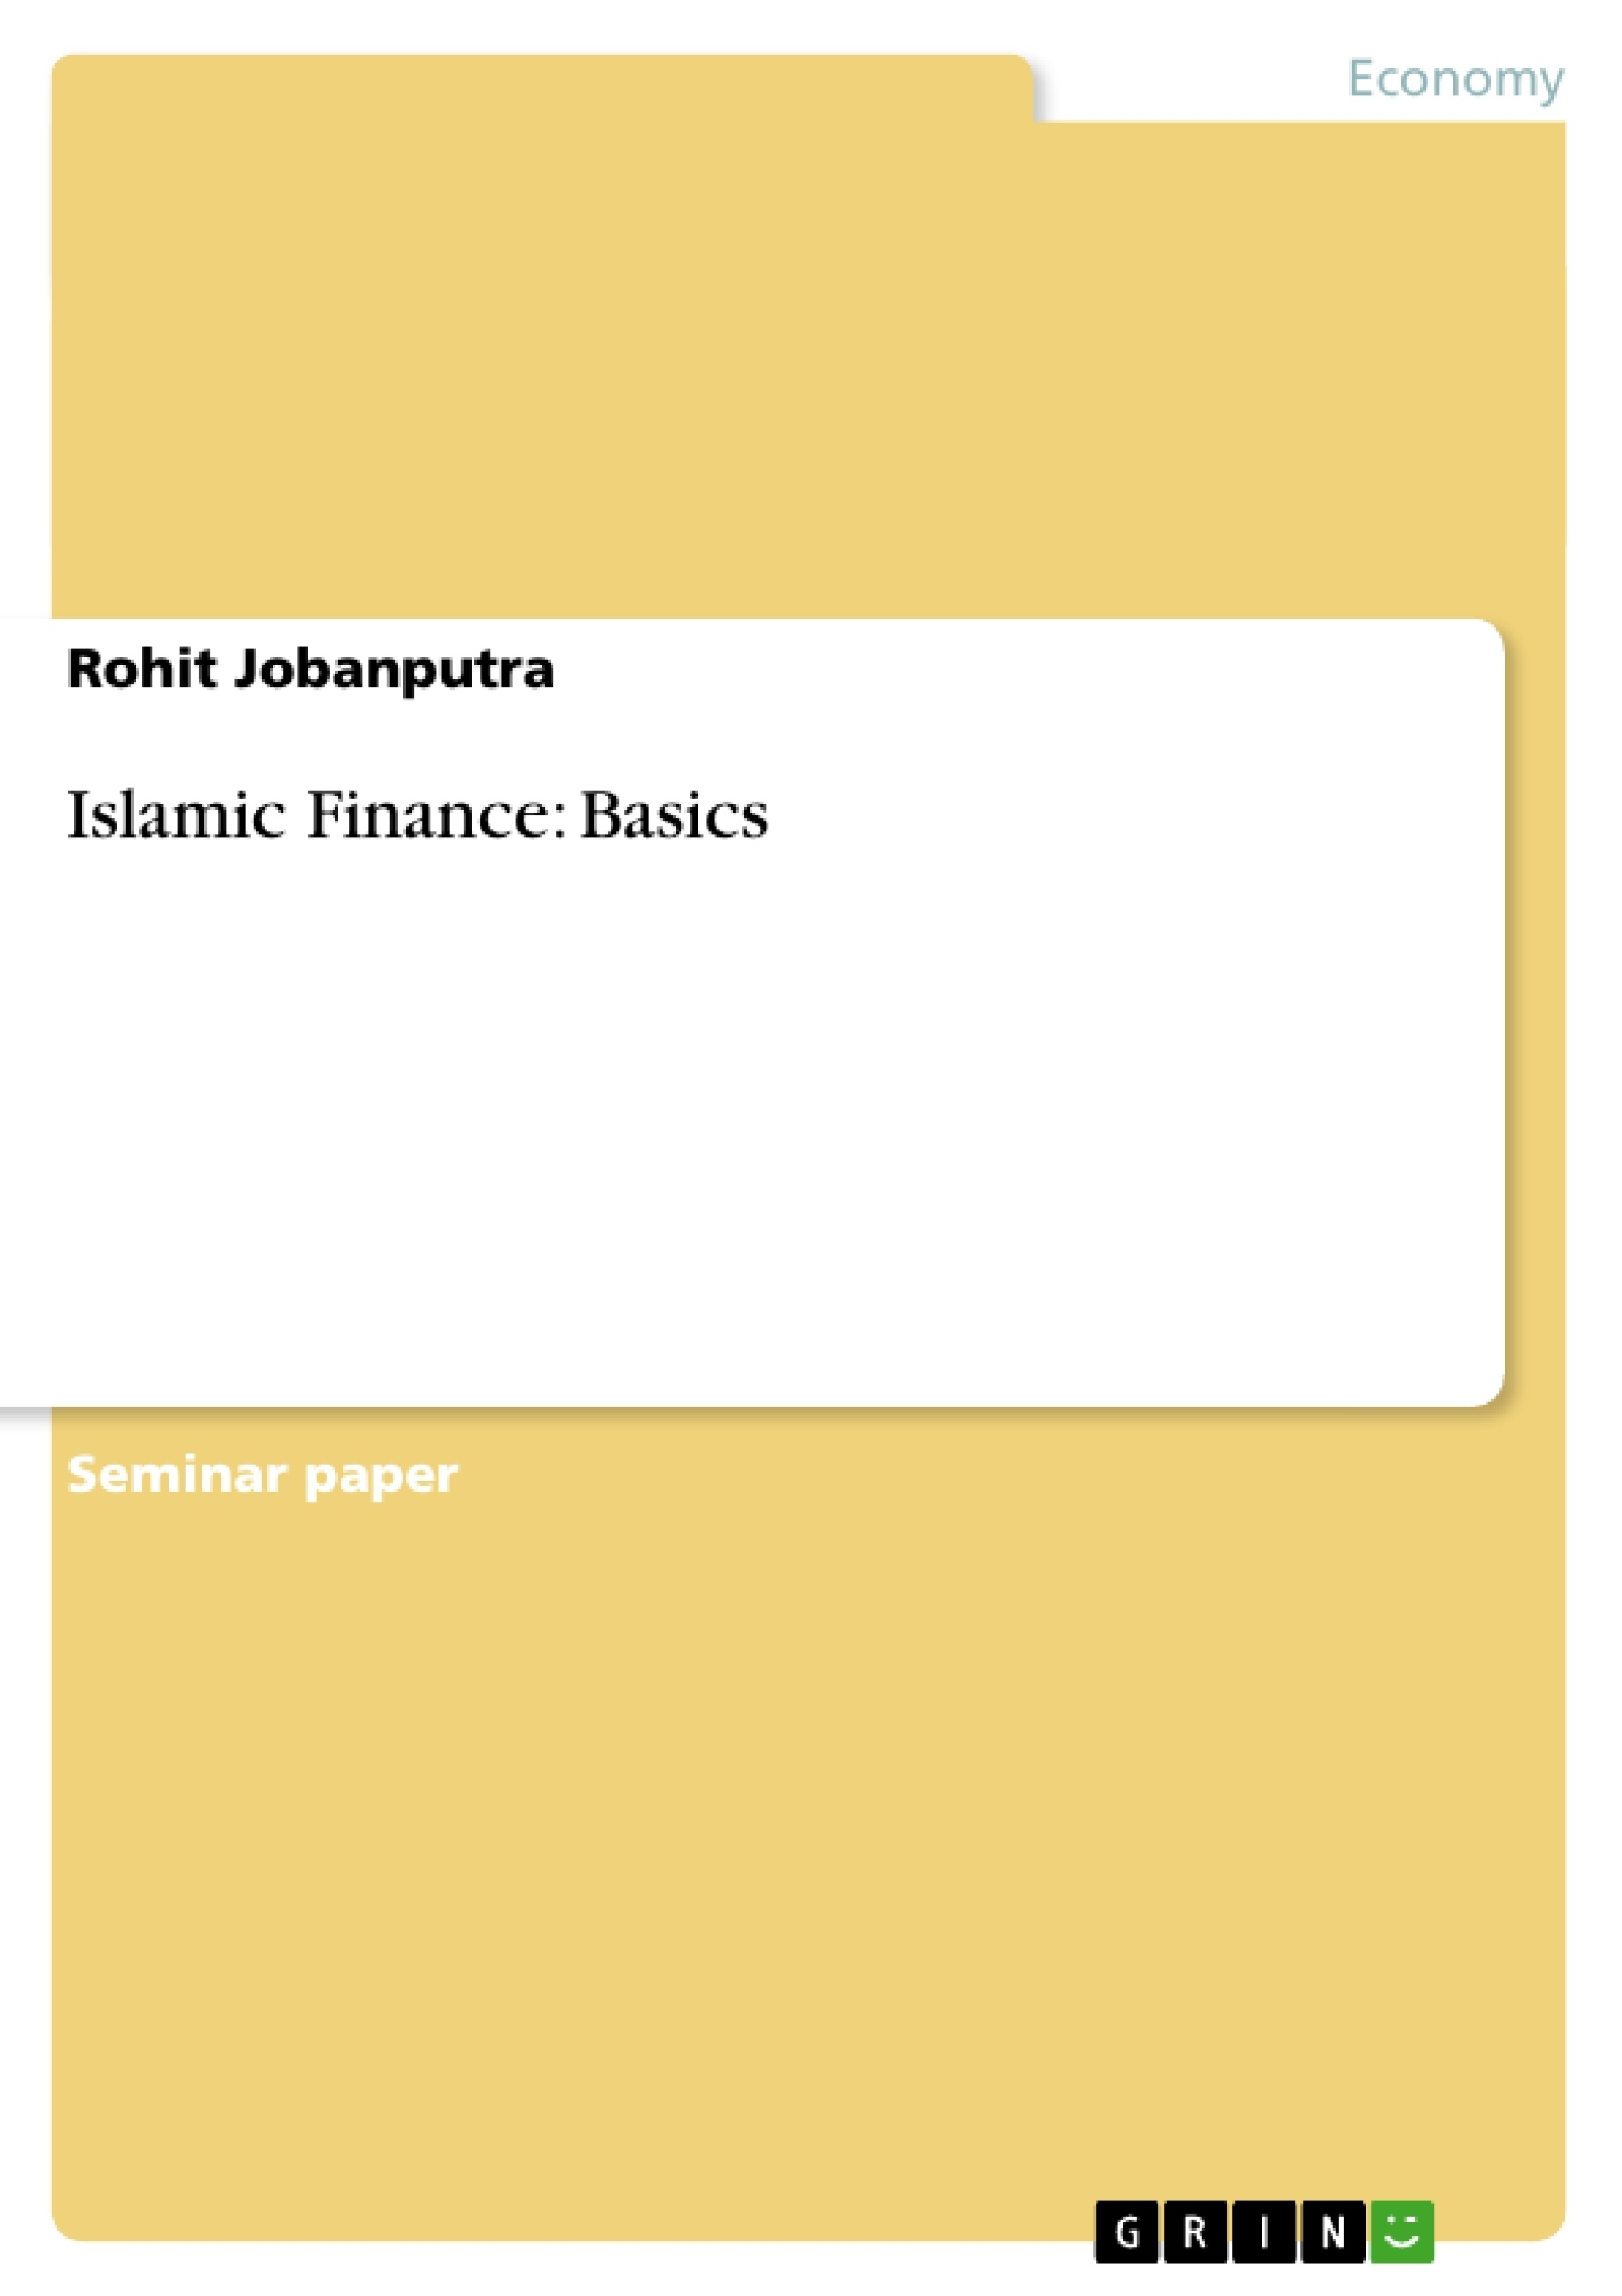 bachelor thesis islamic finance In islamic finance euclid's mba in islamic finance offers an in-depth examination of the vast field of business, finance banking, economic development placed in the wid- er context of a bachelor's degree if their level of education and experience is doctorate should request the full master's thesis option which.